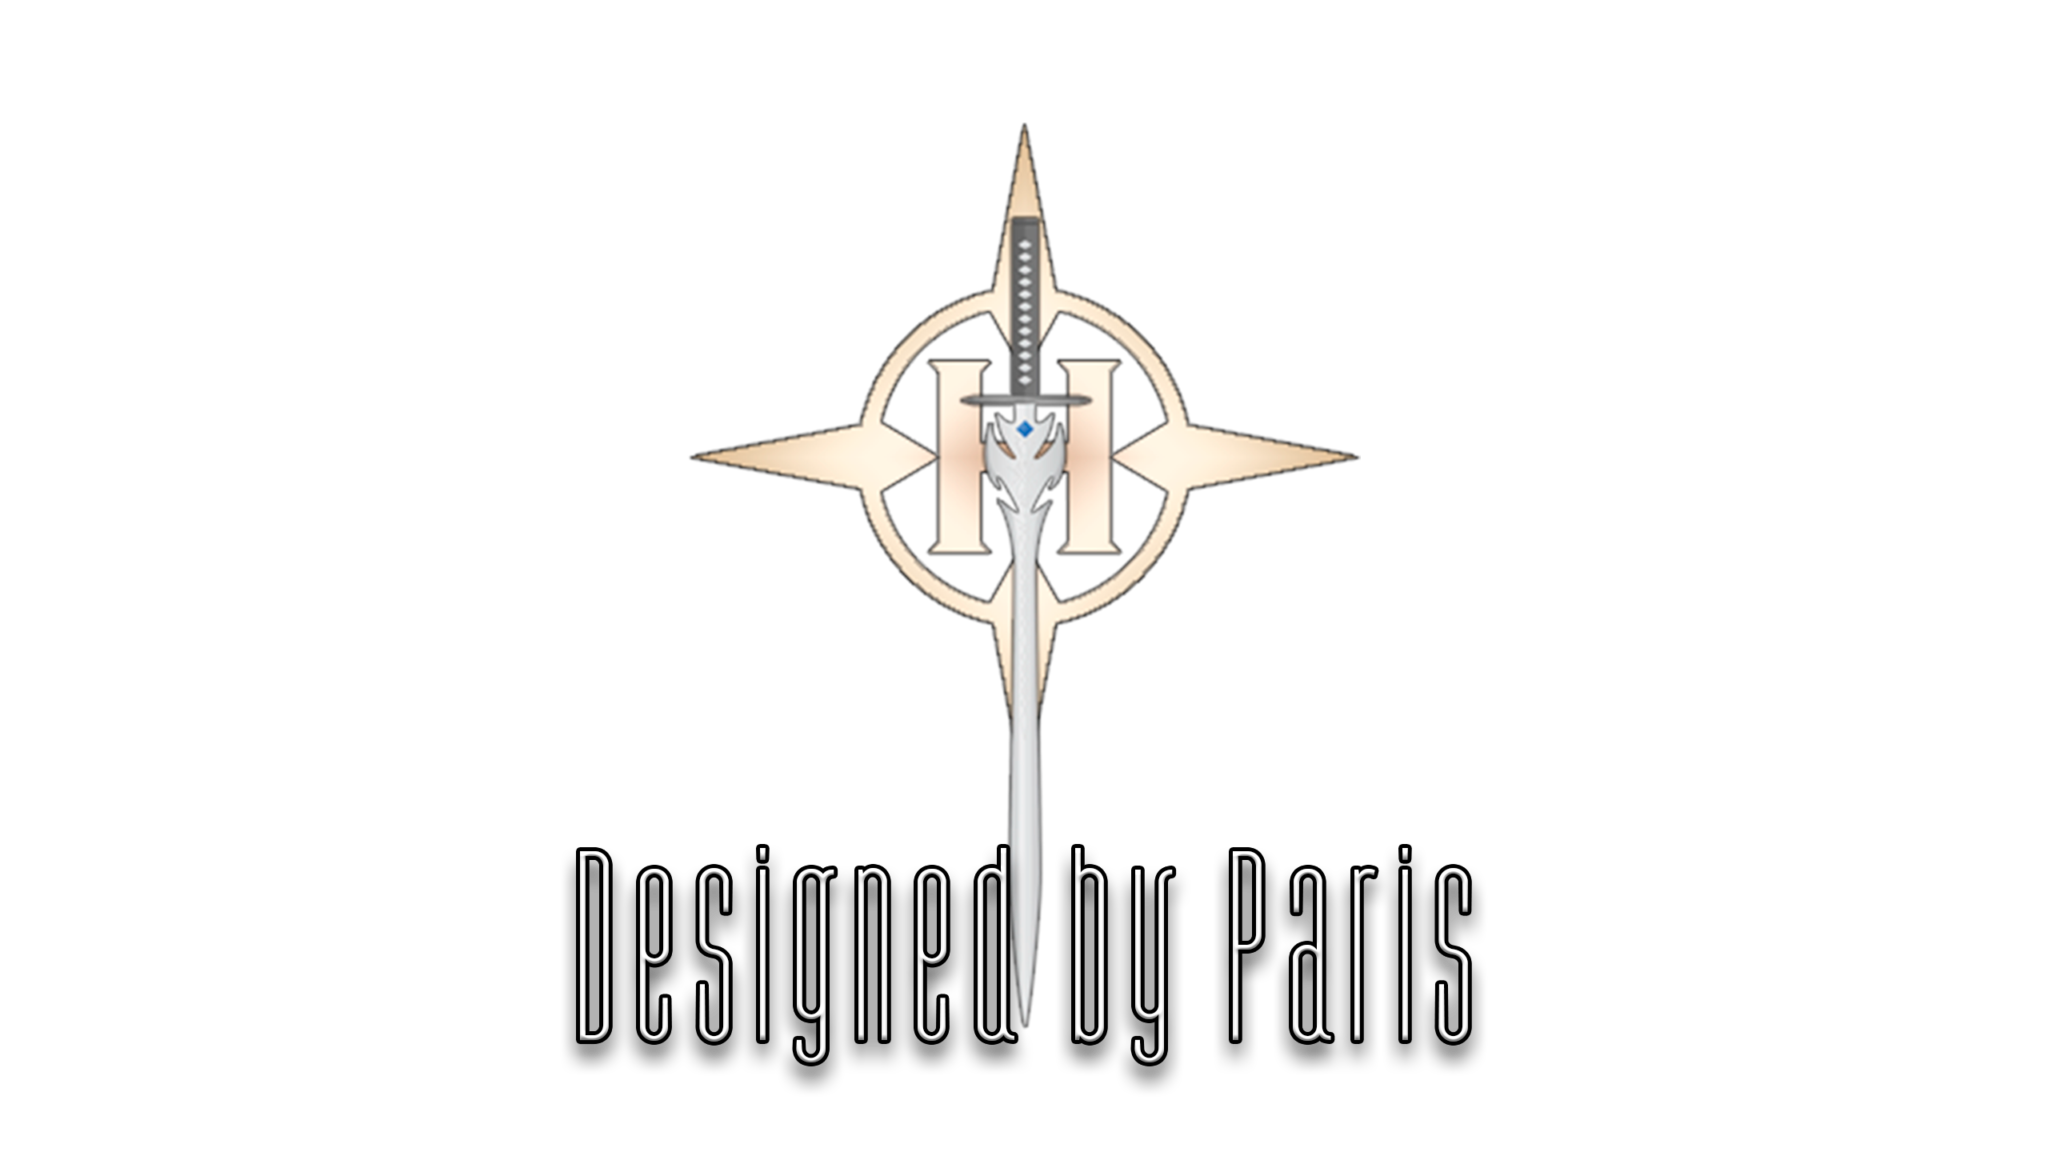 Designed by Paris